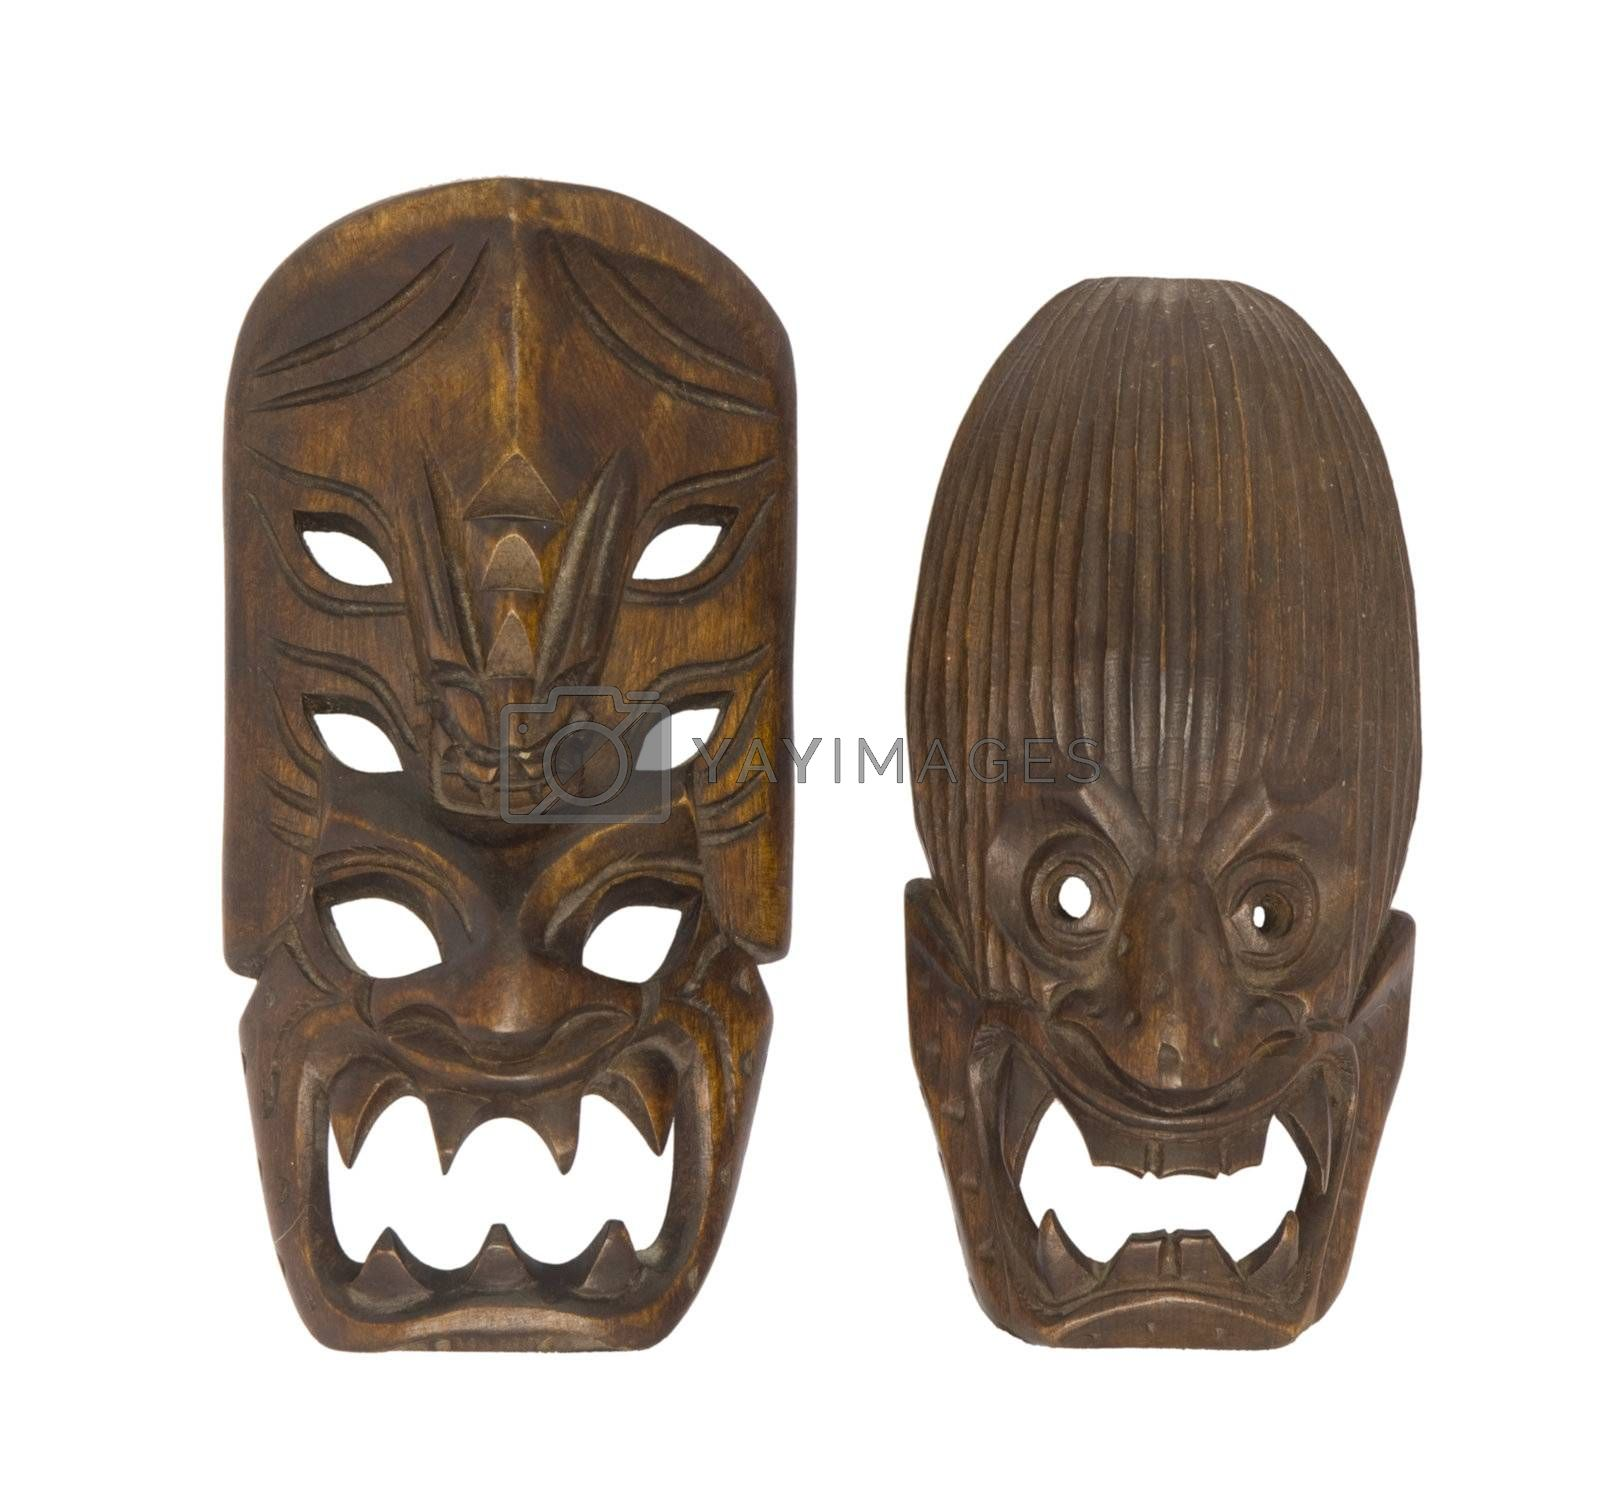 Small Traditional Ifugao Mask (Philippines) by huijzer